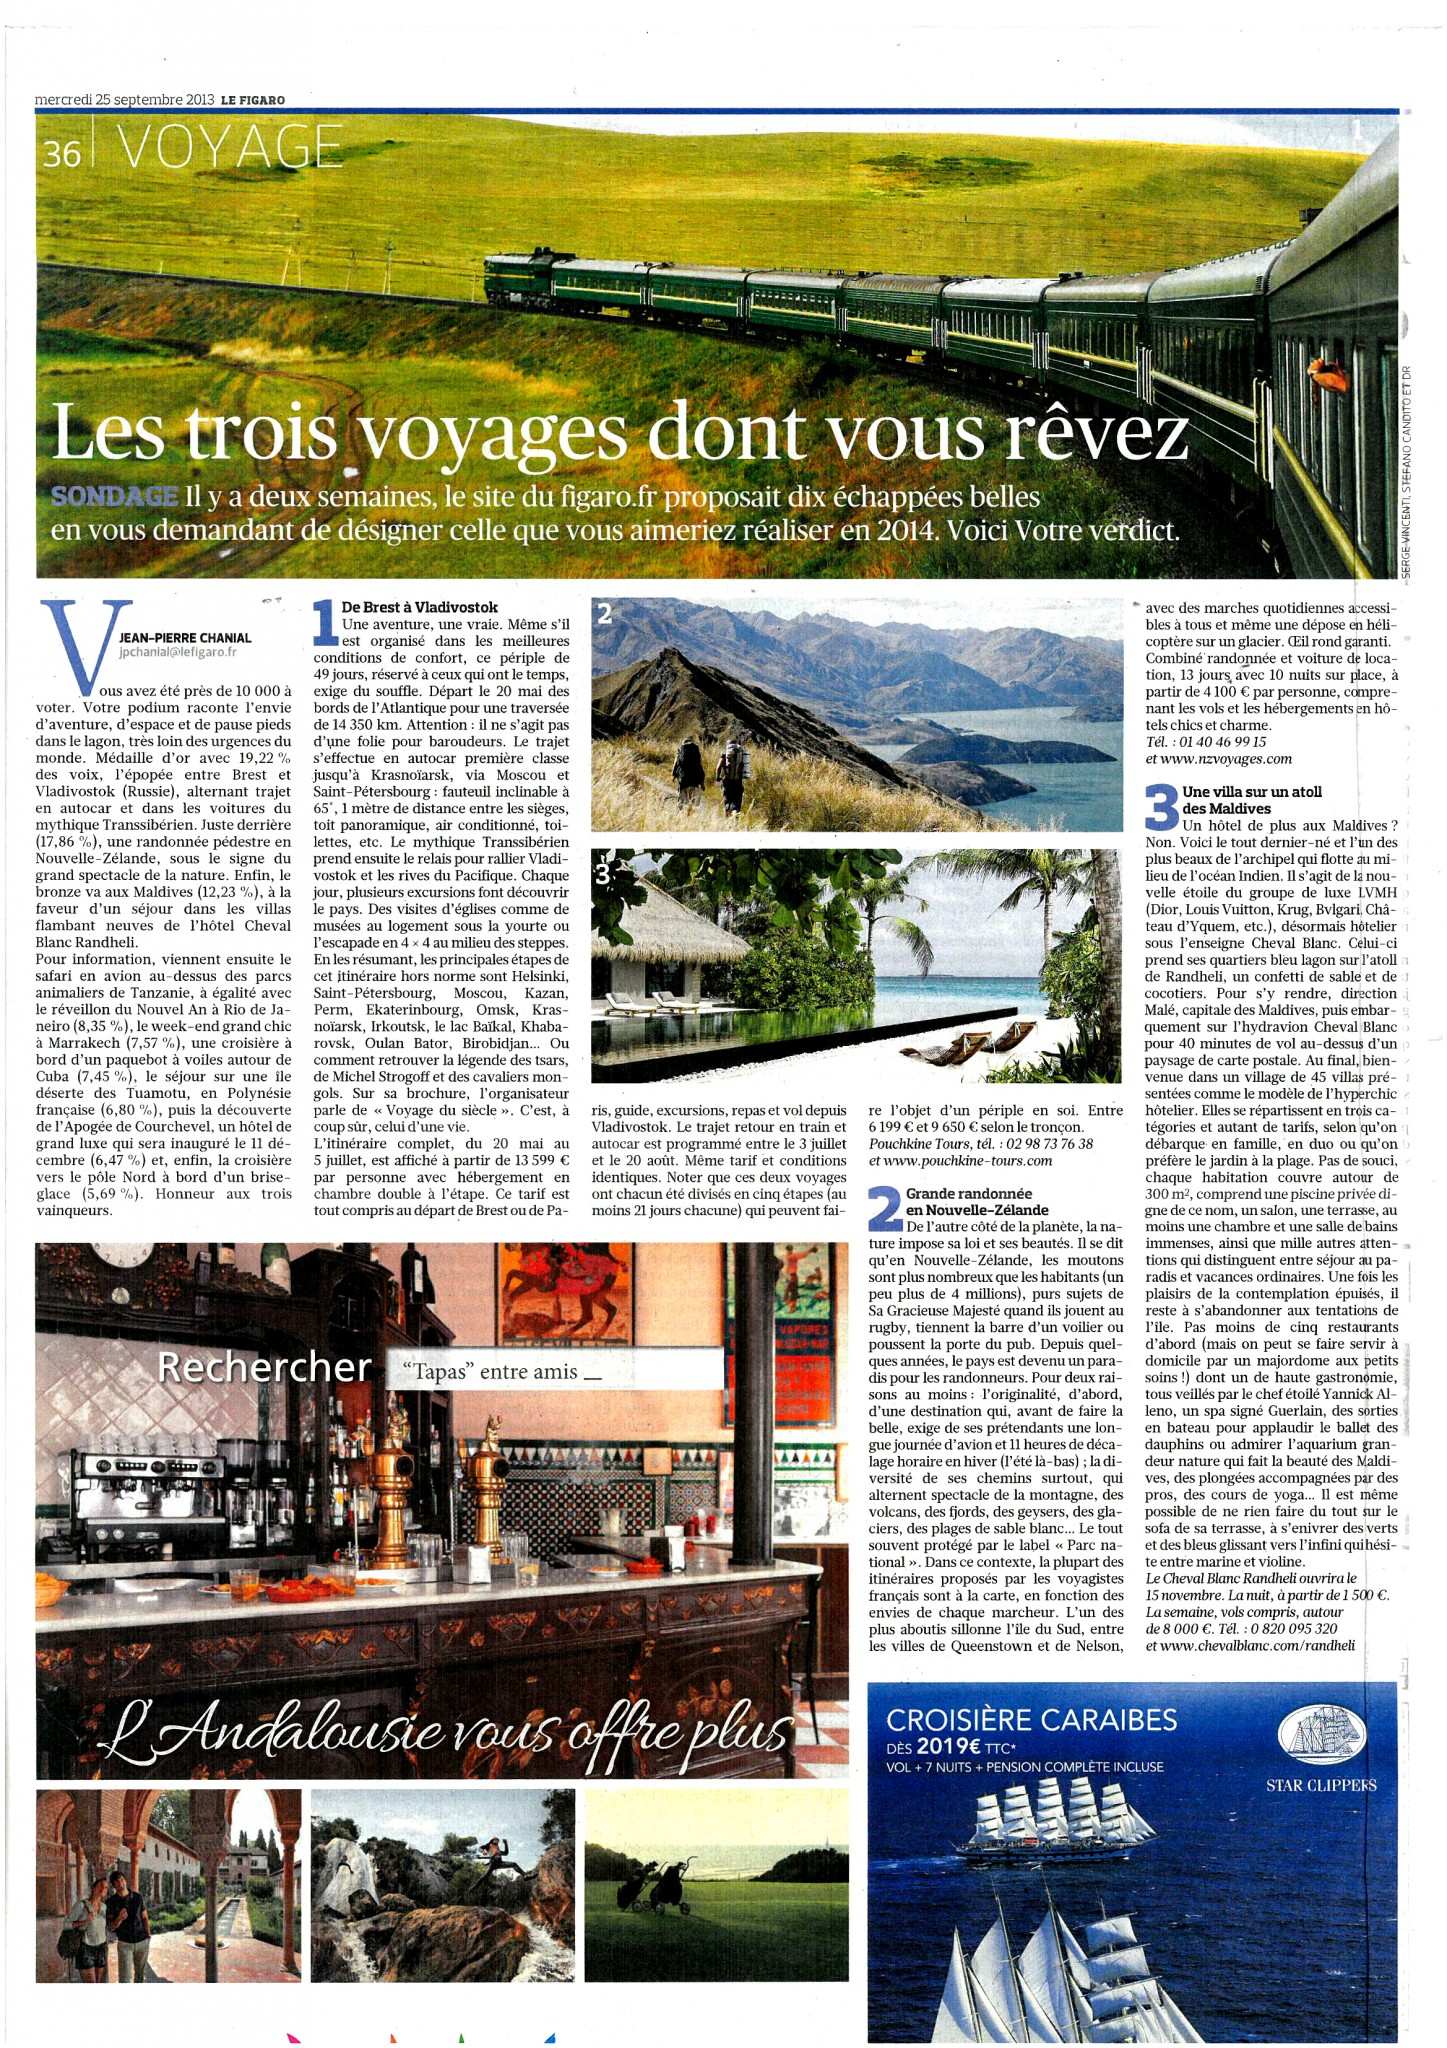 FIGARO-CROISIERE-ROUTIERE-25-SEPT2013